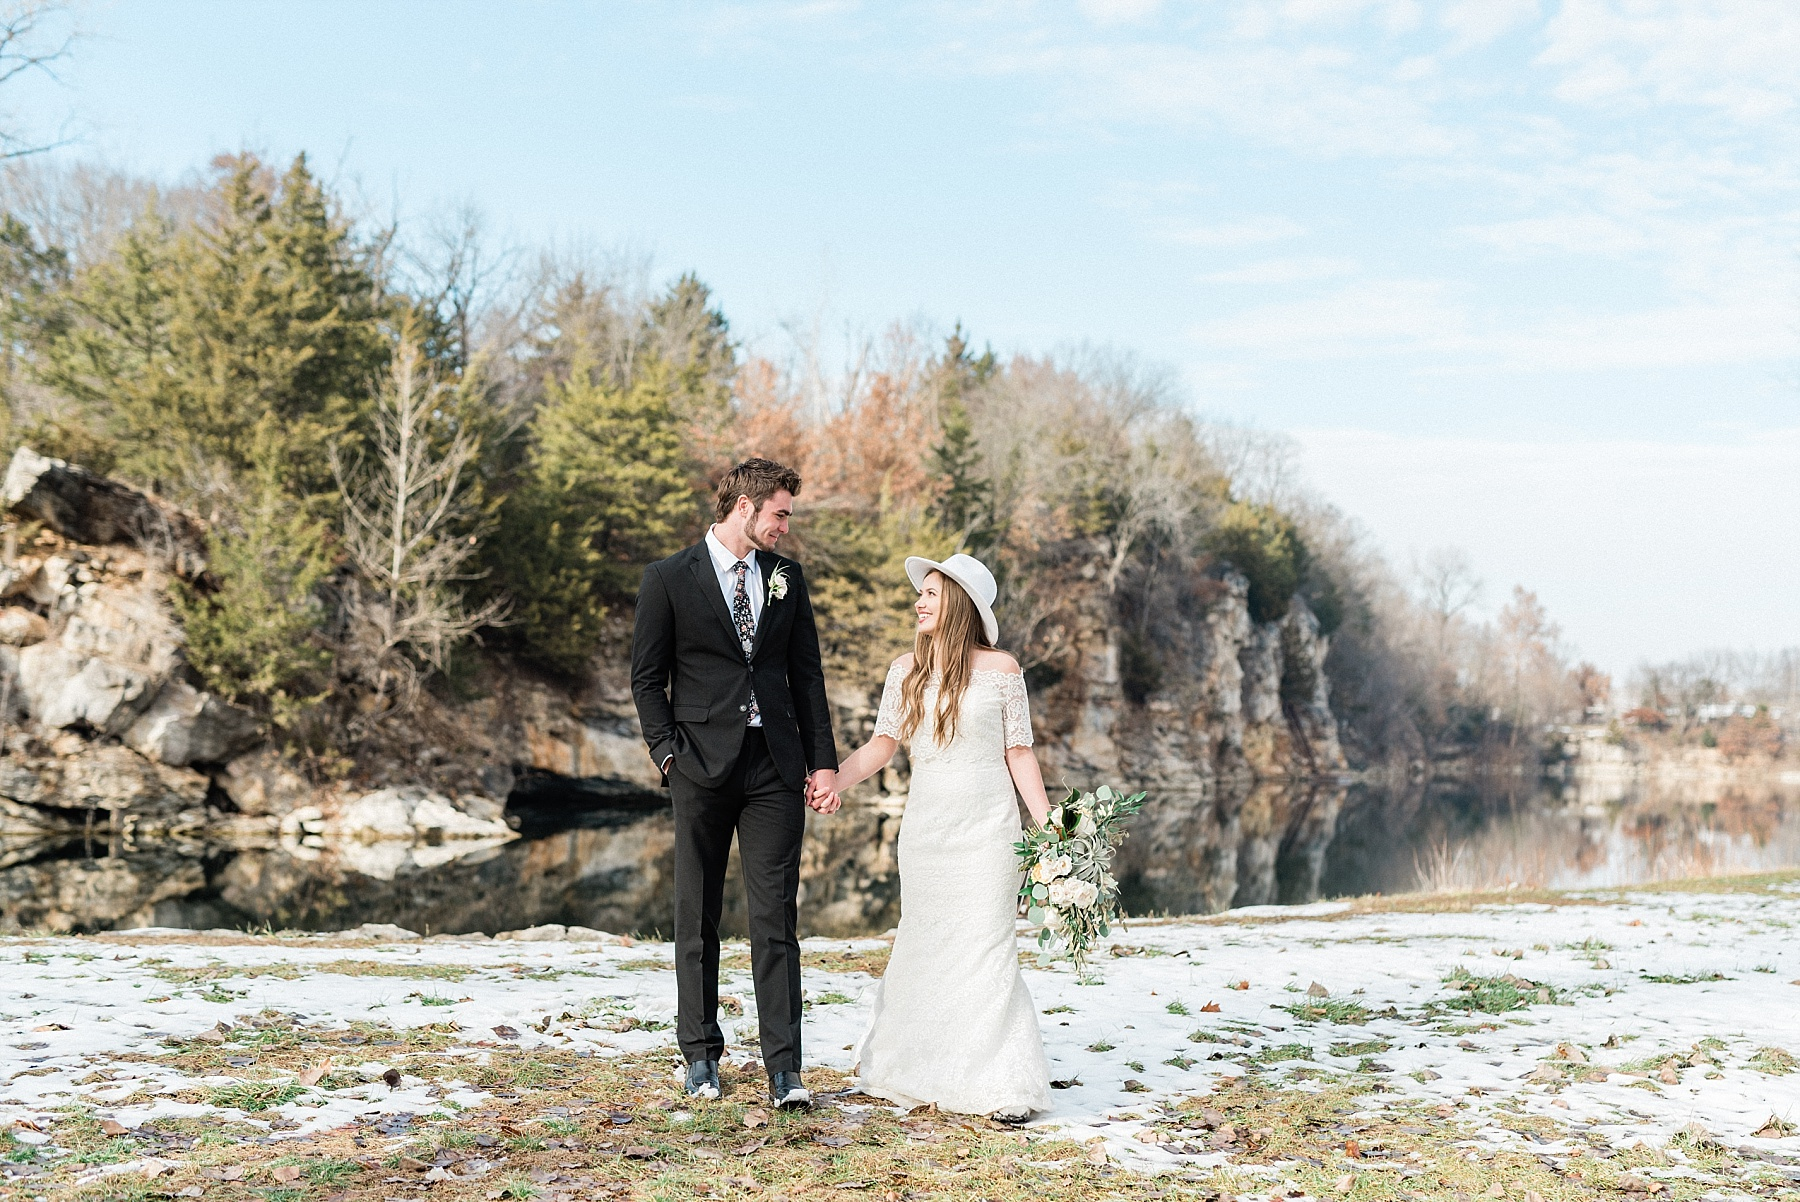 Snowy Winter Wedding at Wildcliff Events Lake With Earthy Jewel Tones and Organic Refined Style by Kelsi Kliethermes Photography Kansas City Missouri Wedding Photographer_0007.jpg